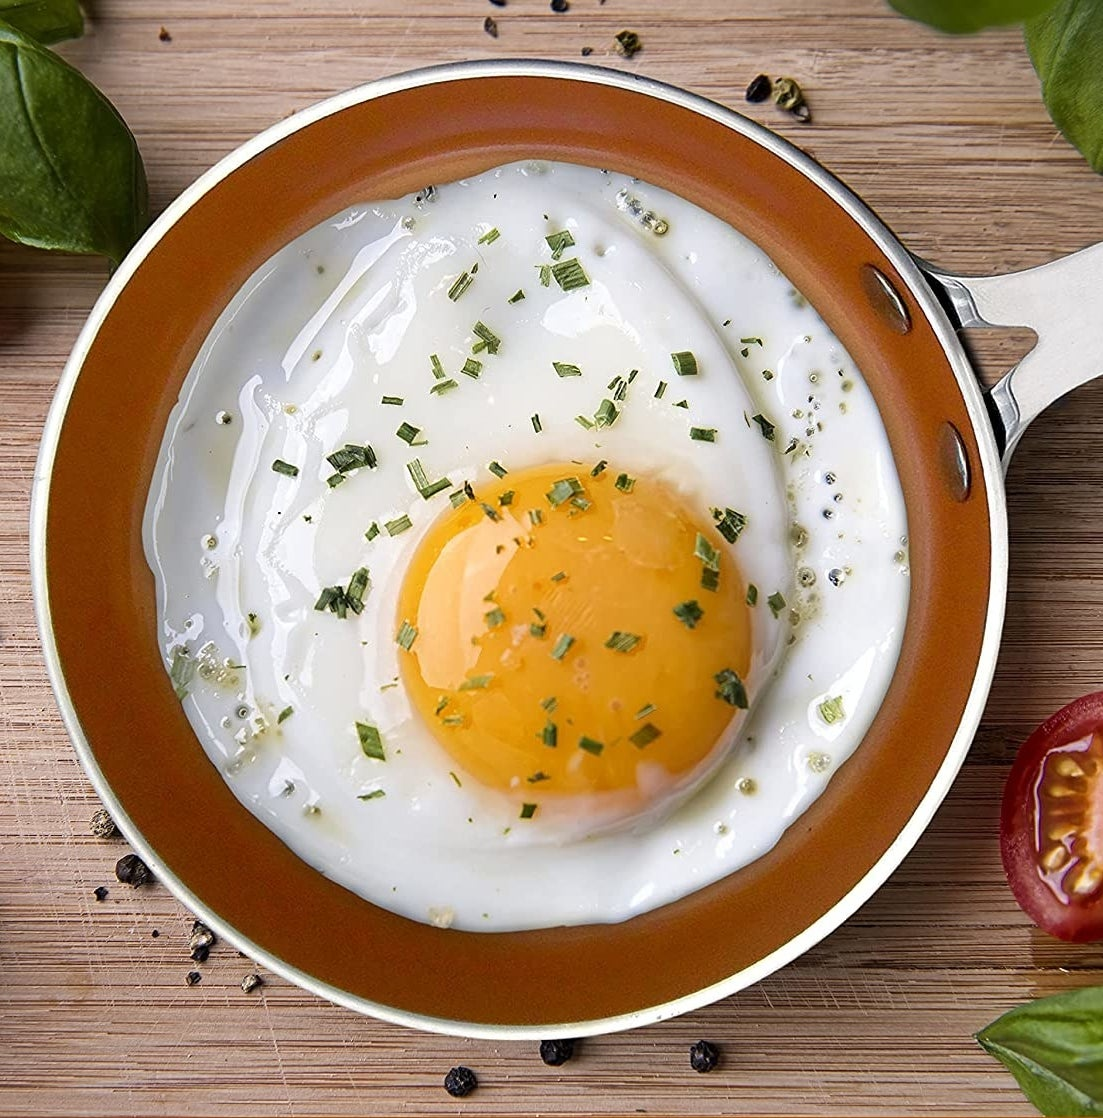 A fried egg that fits perfectly in the non-stick skillet